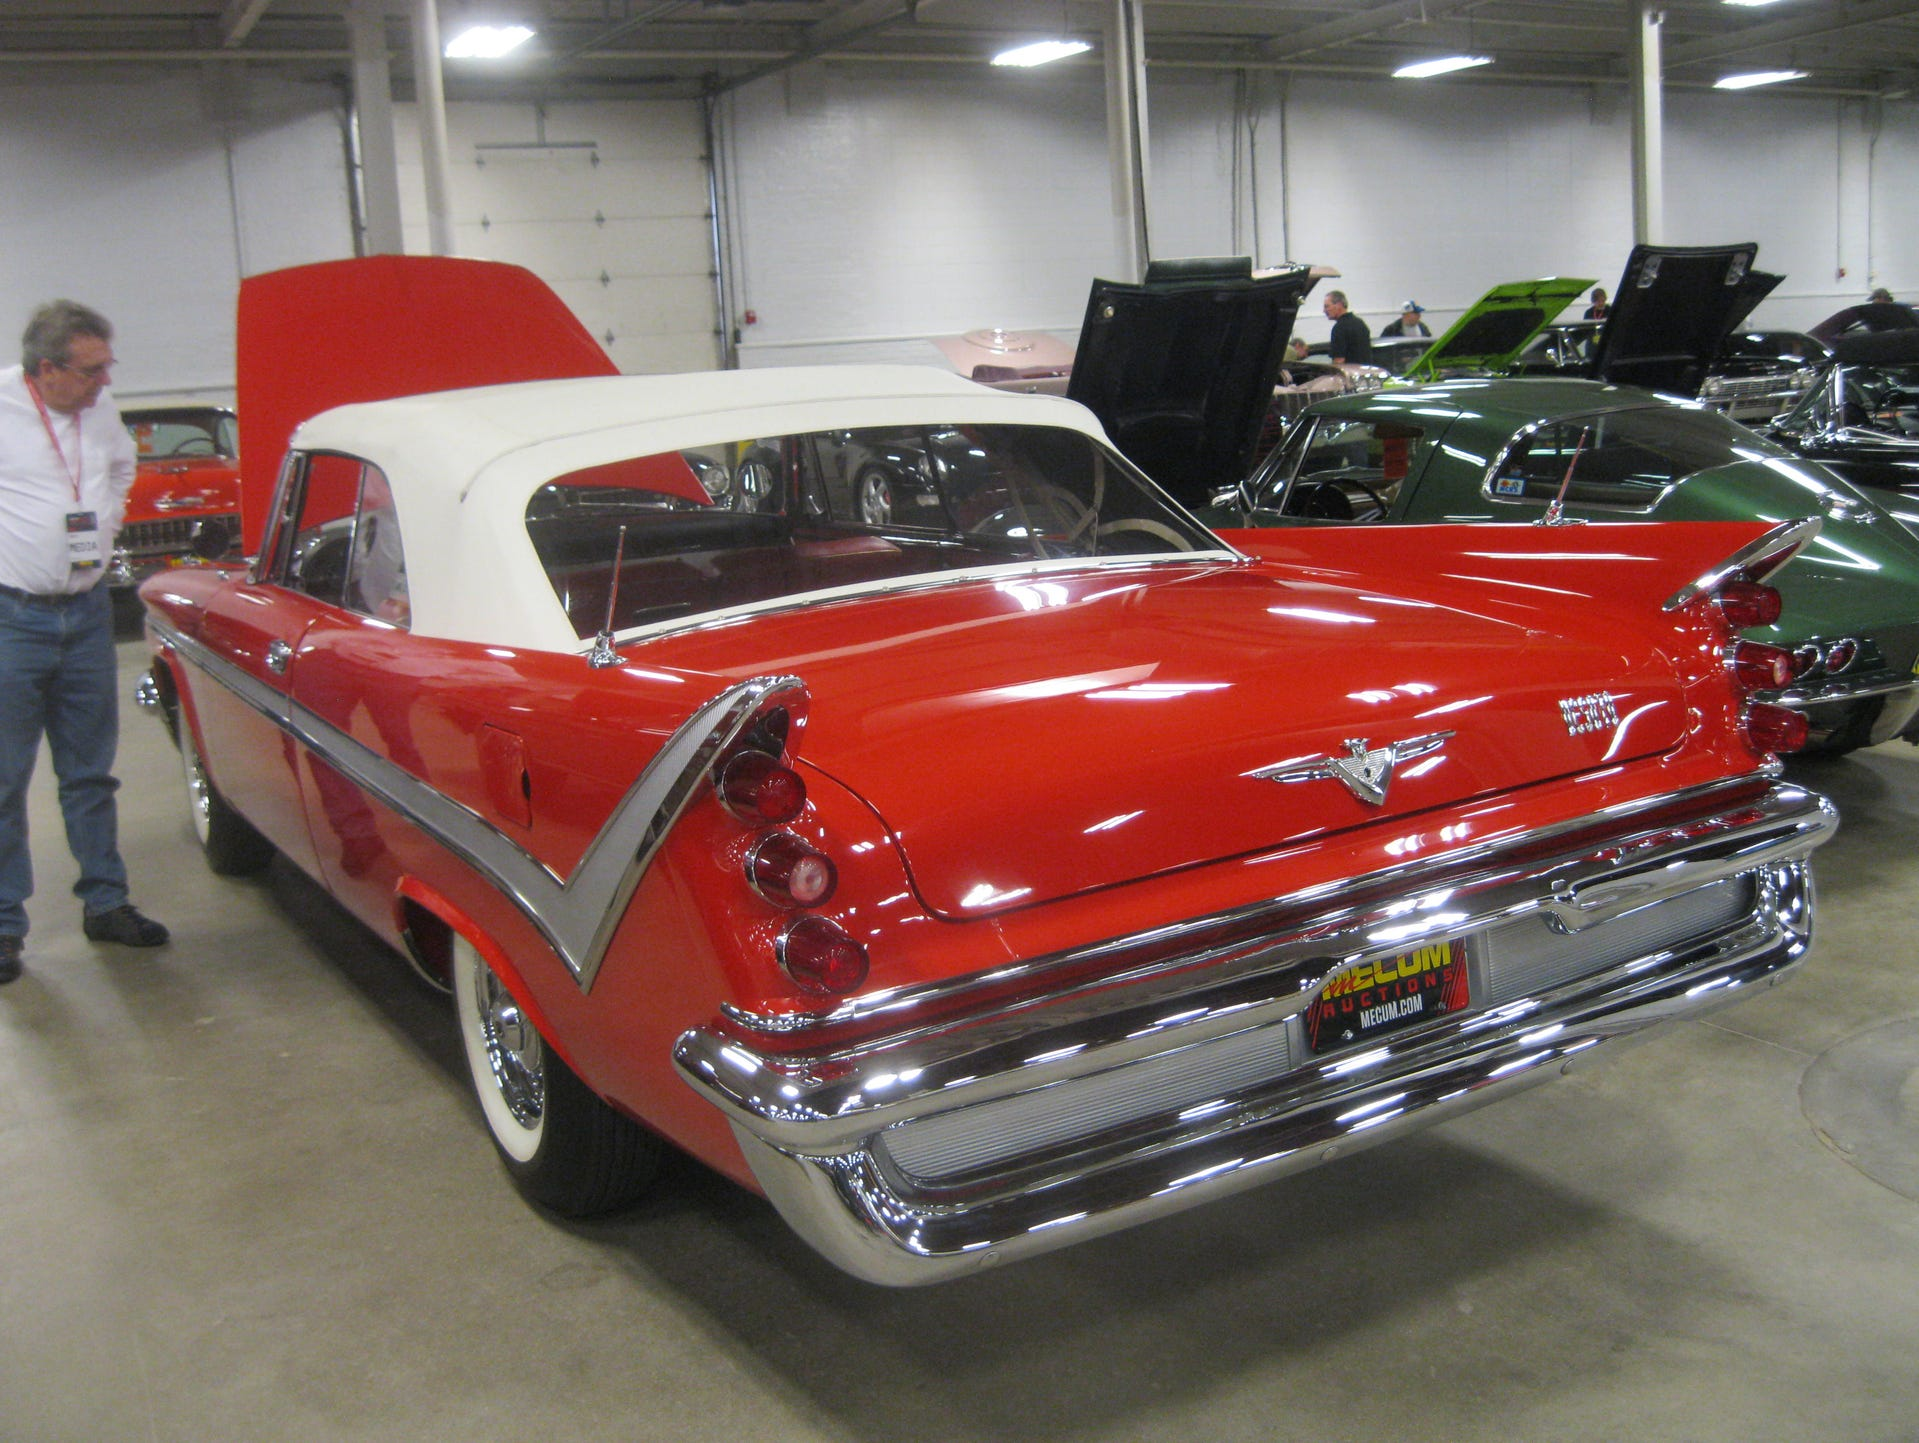 $48M worth of classic cars sold at Indianapolis auction